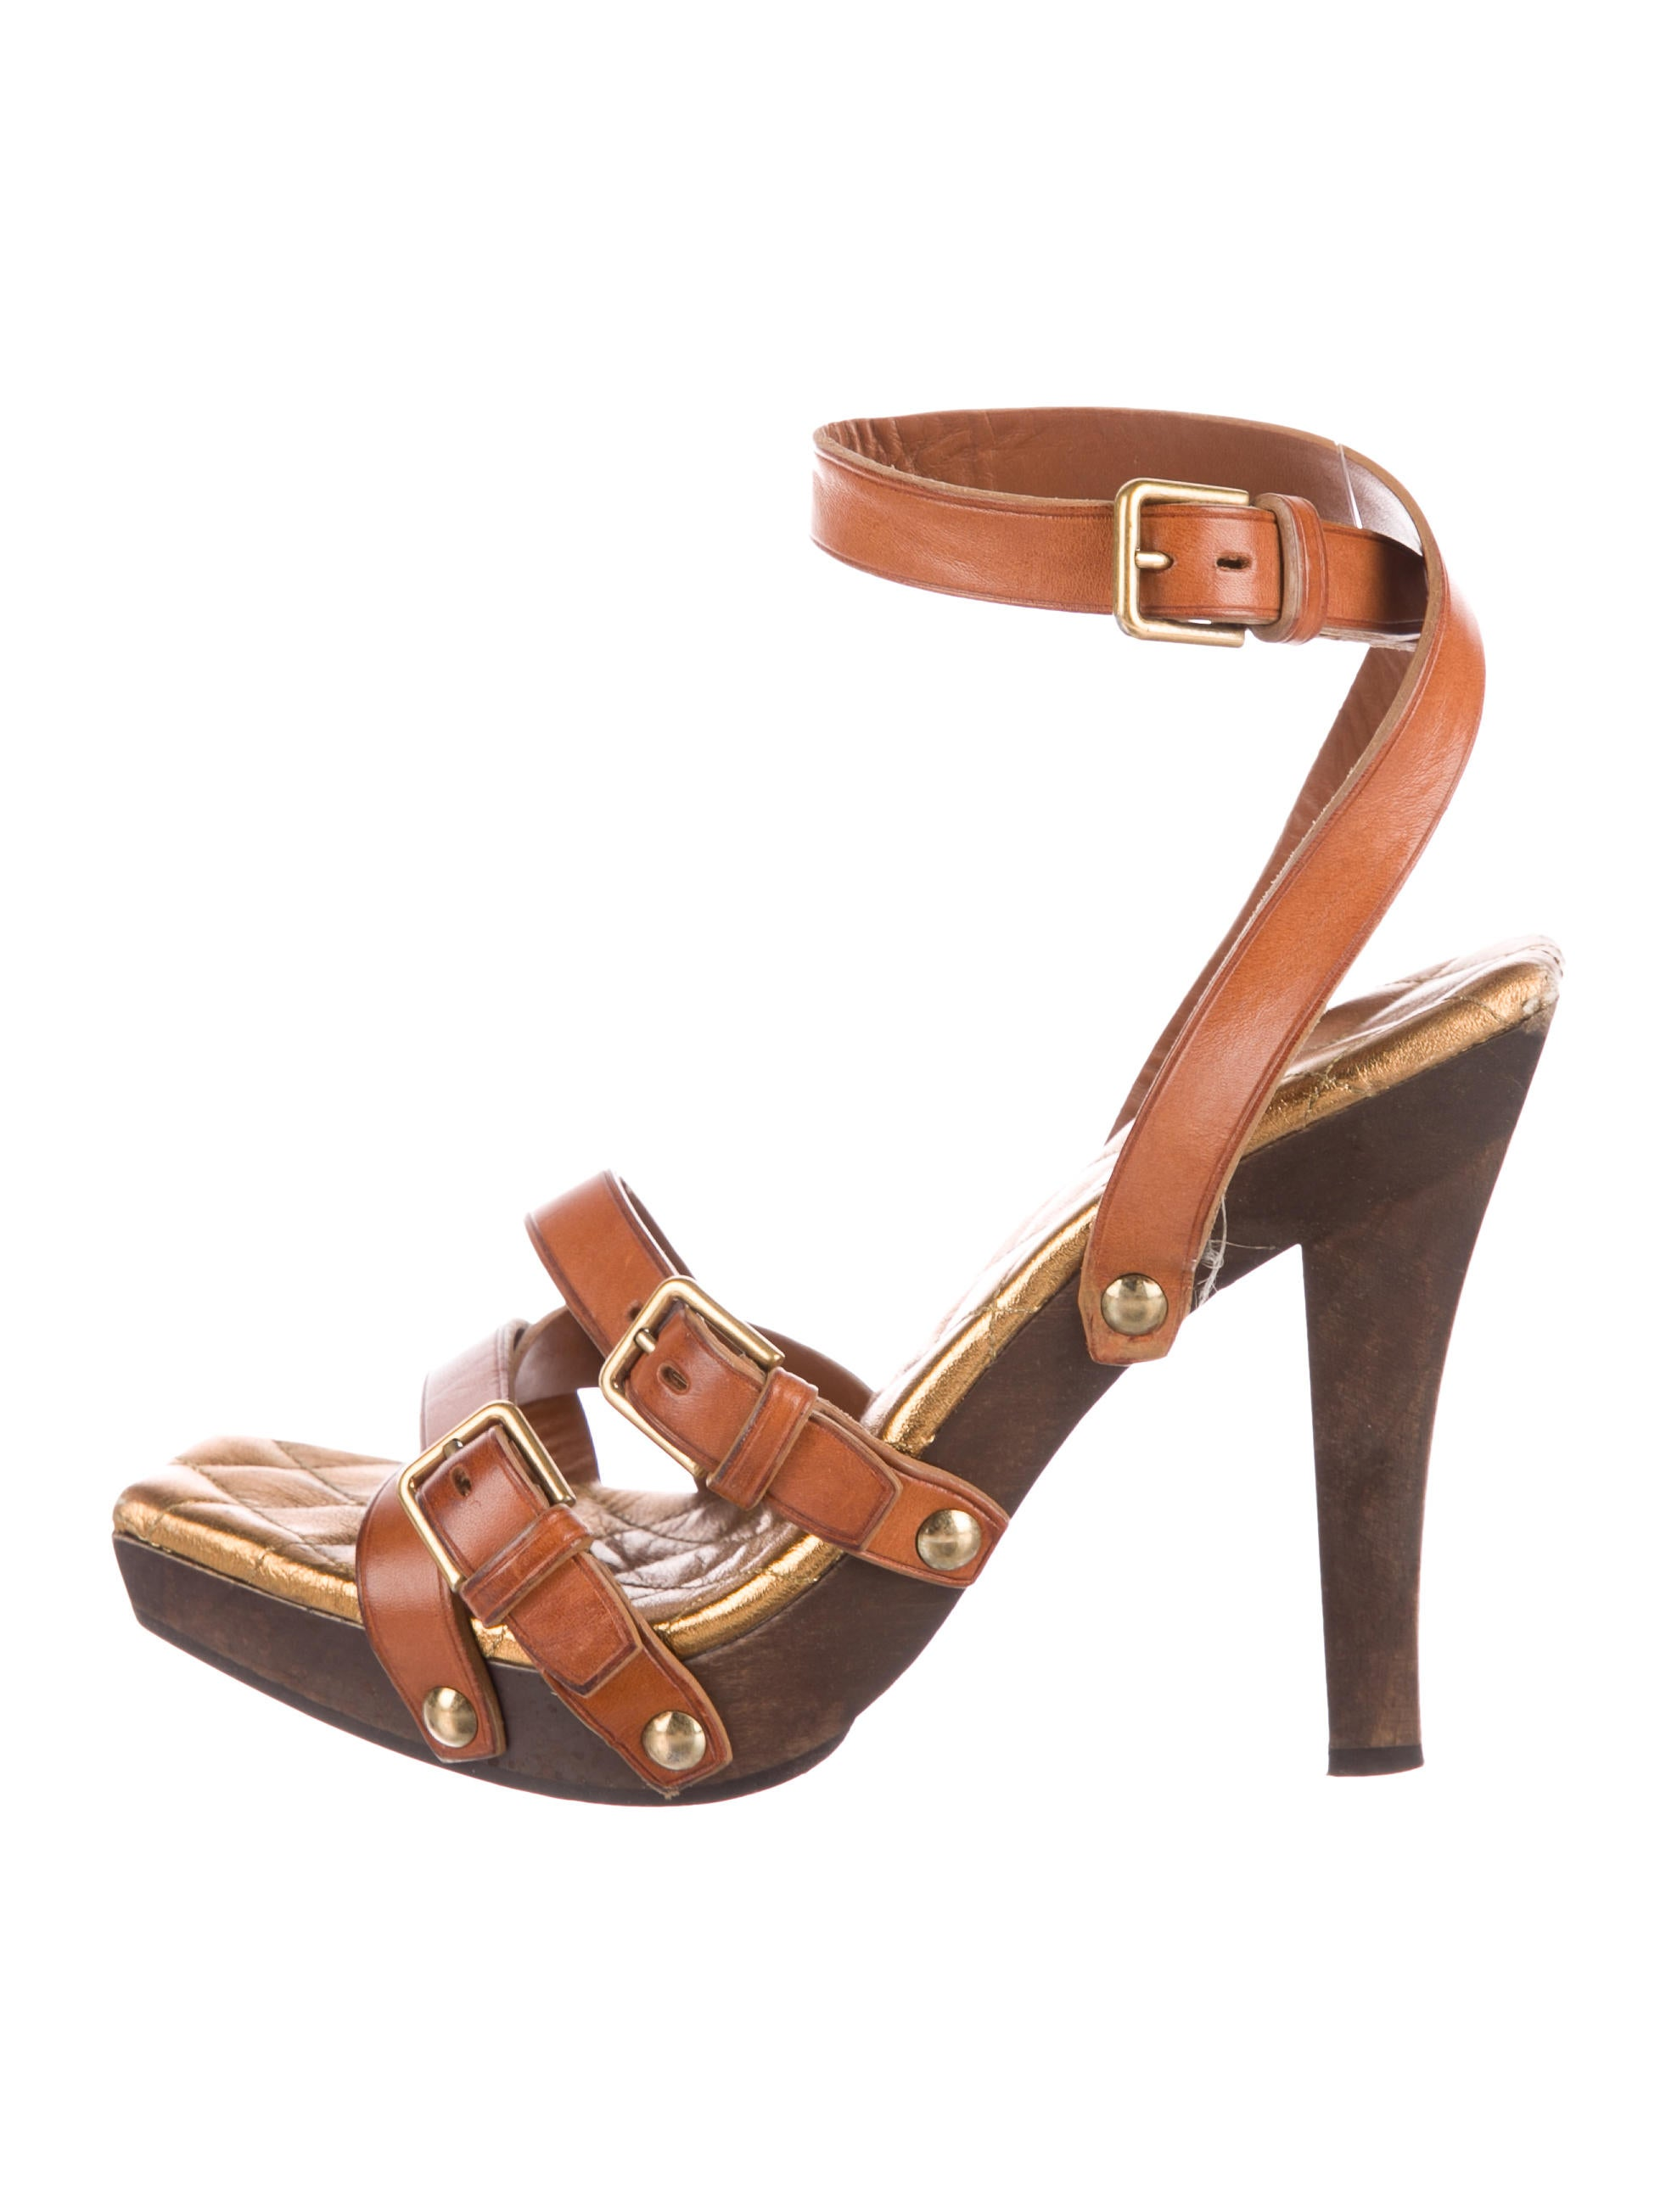 Yves Saint Laurent Leather Multistrap Sandals sale nicekicks pay with paypal cheap online visit online mSy83Dl